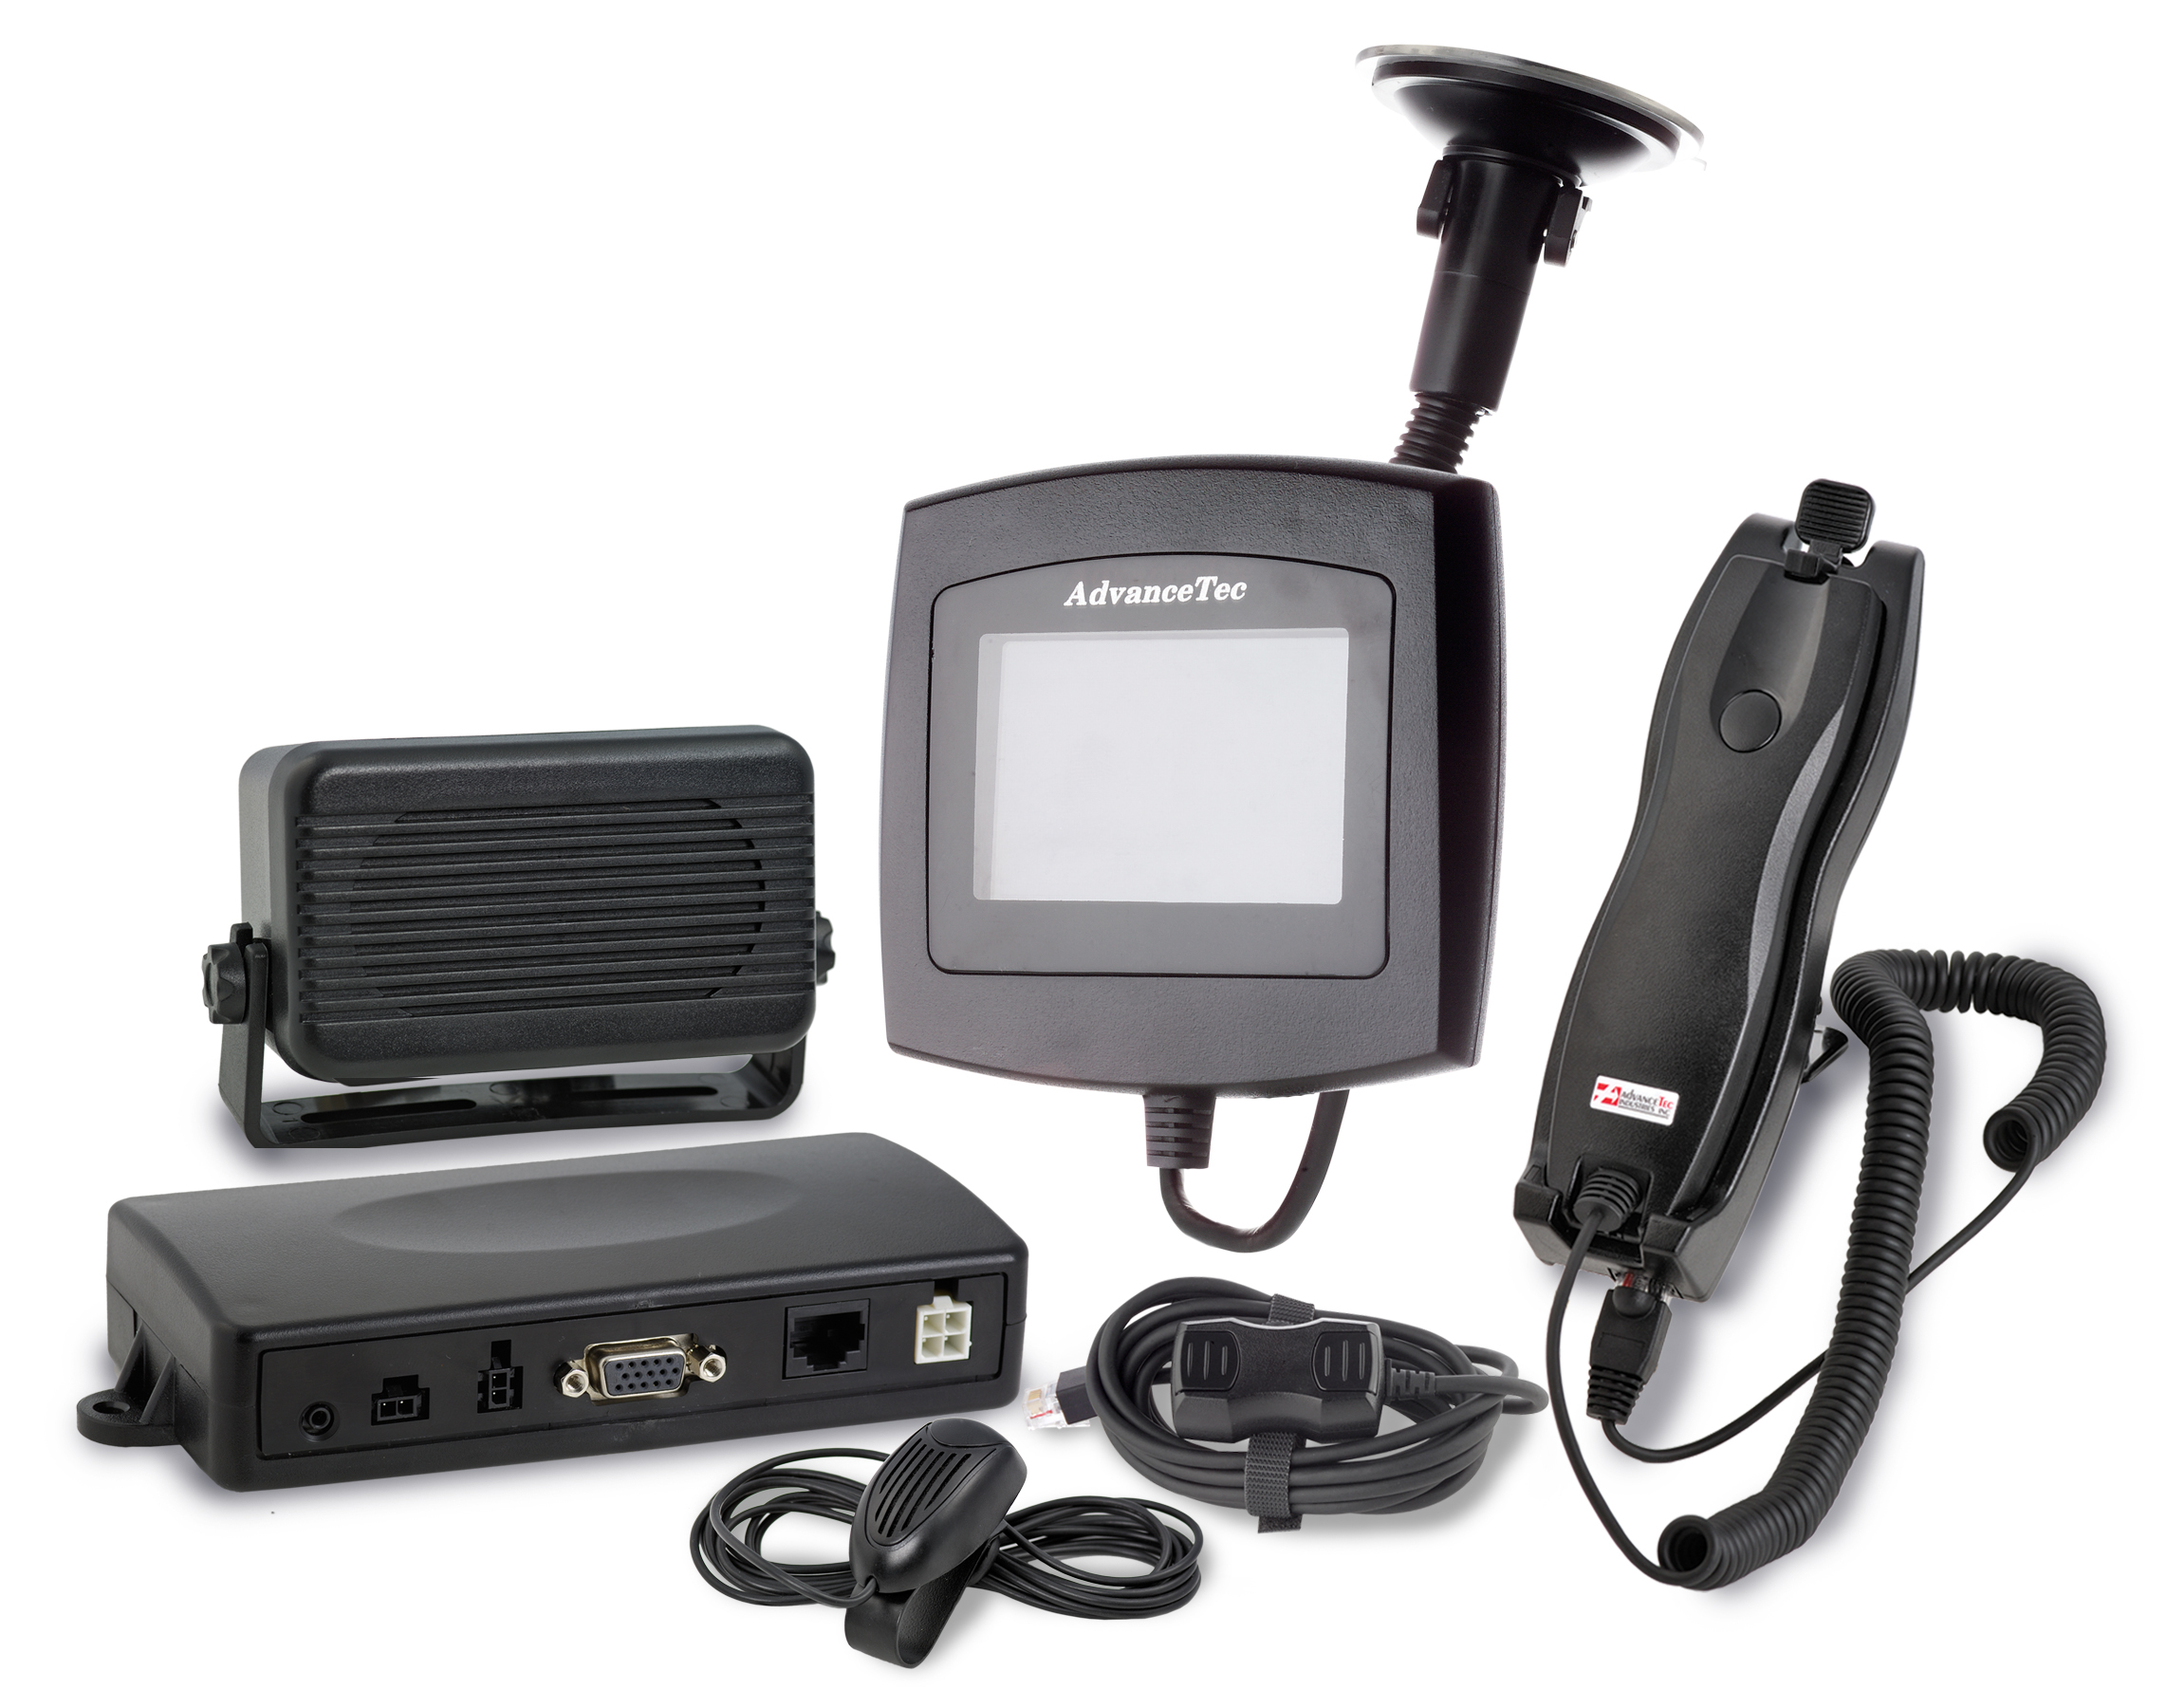 AdvanceBlue Commercial Bluetooth Hands-Free Kit